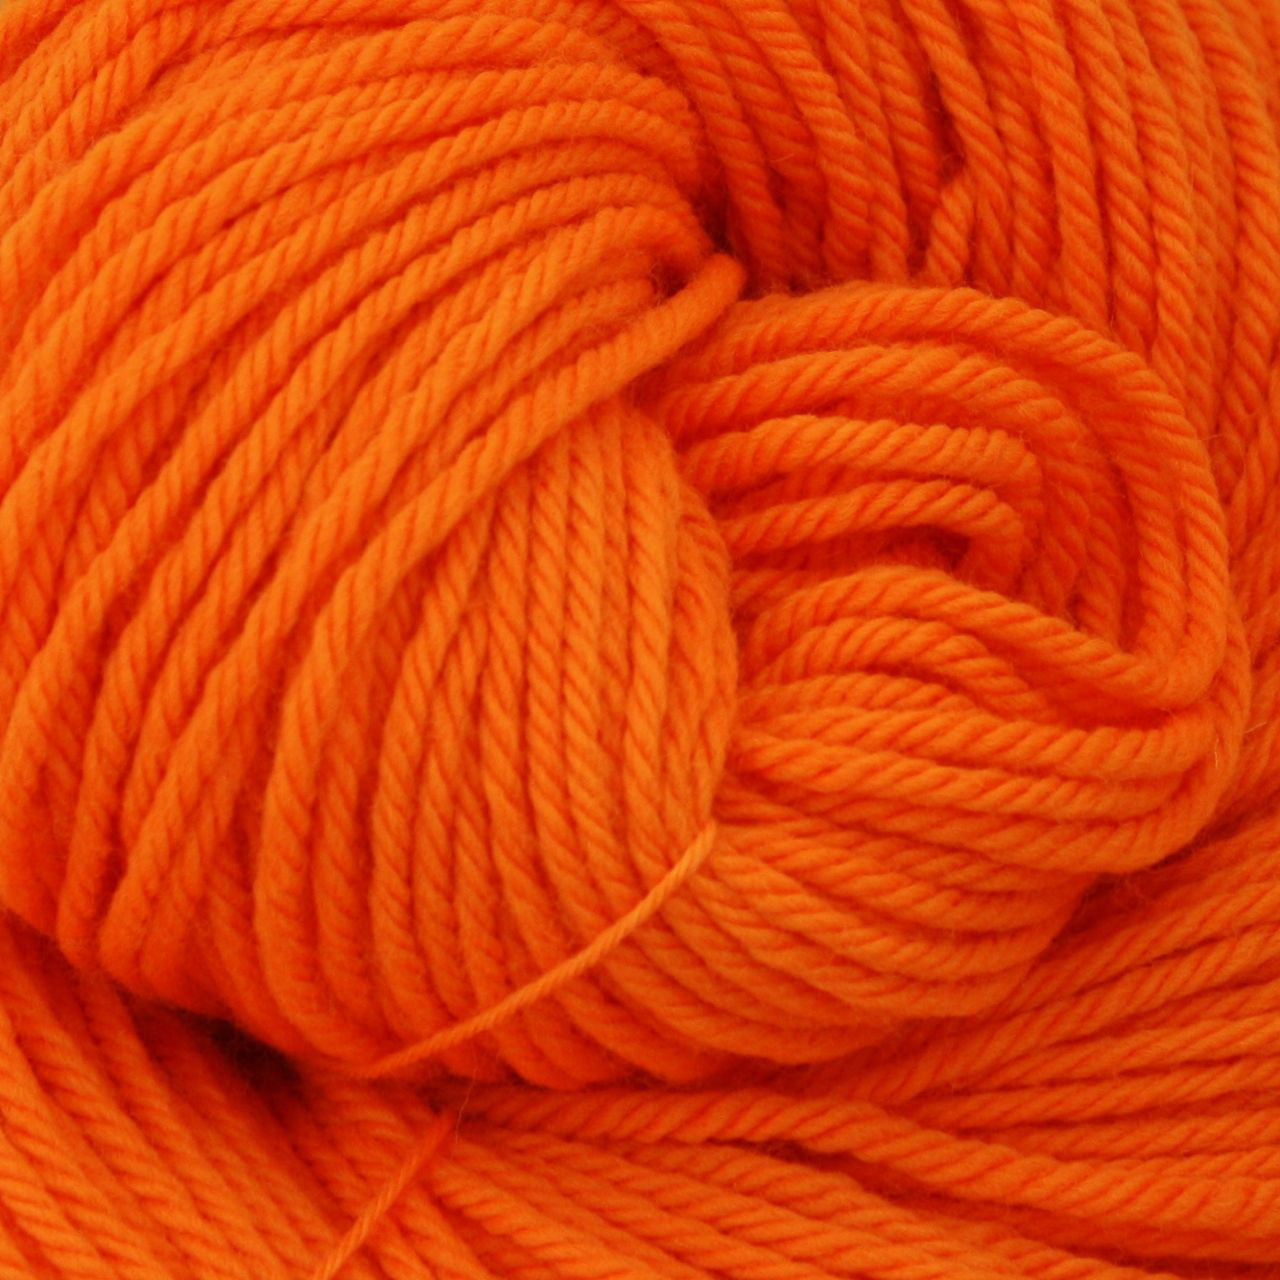 Supernova Yarn | Colorway: Safety Orange